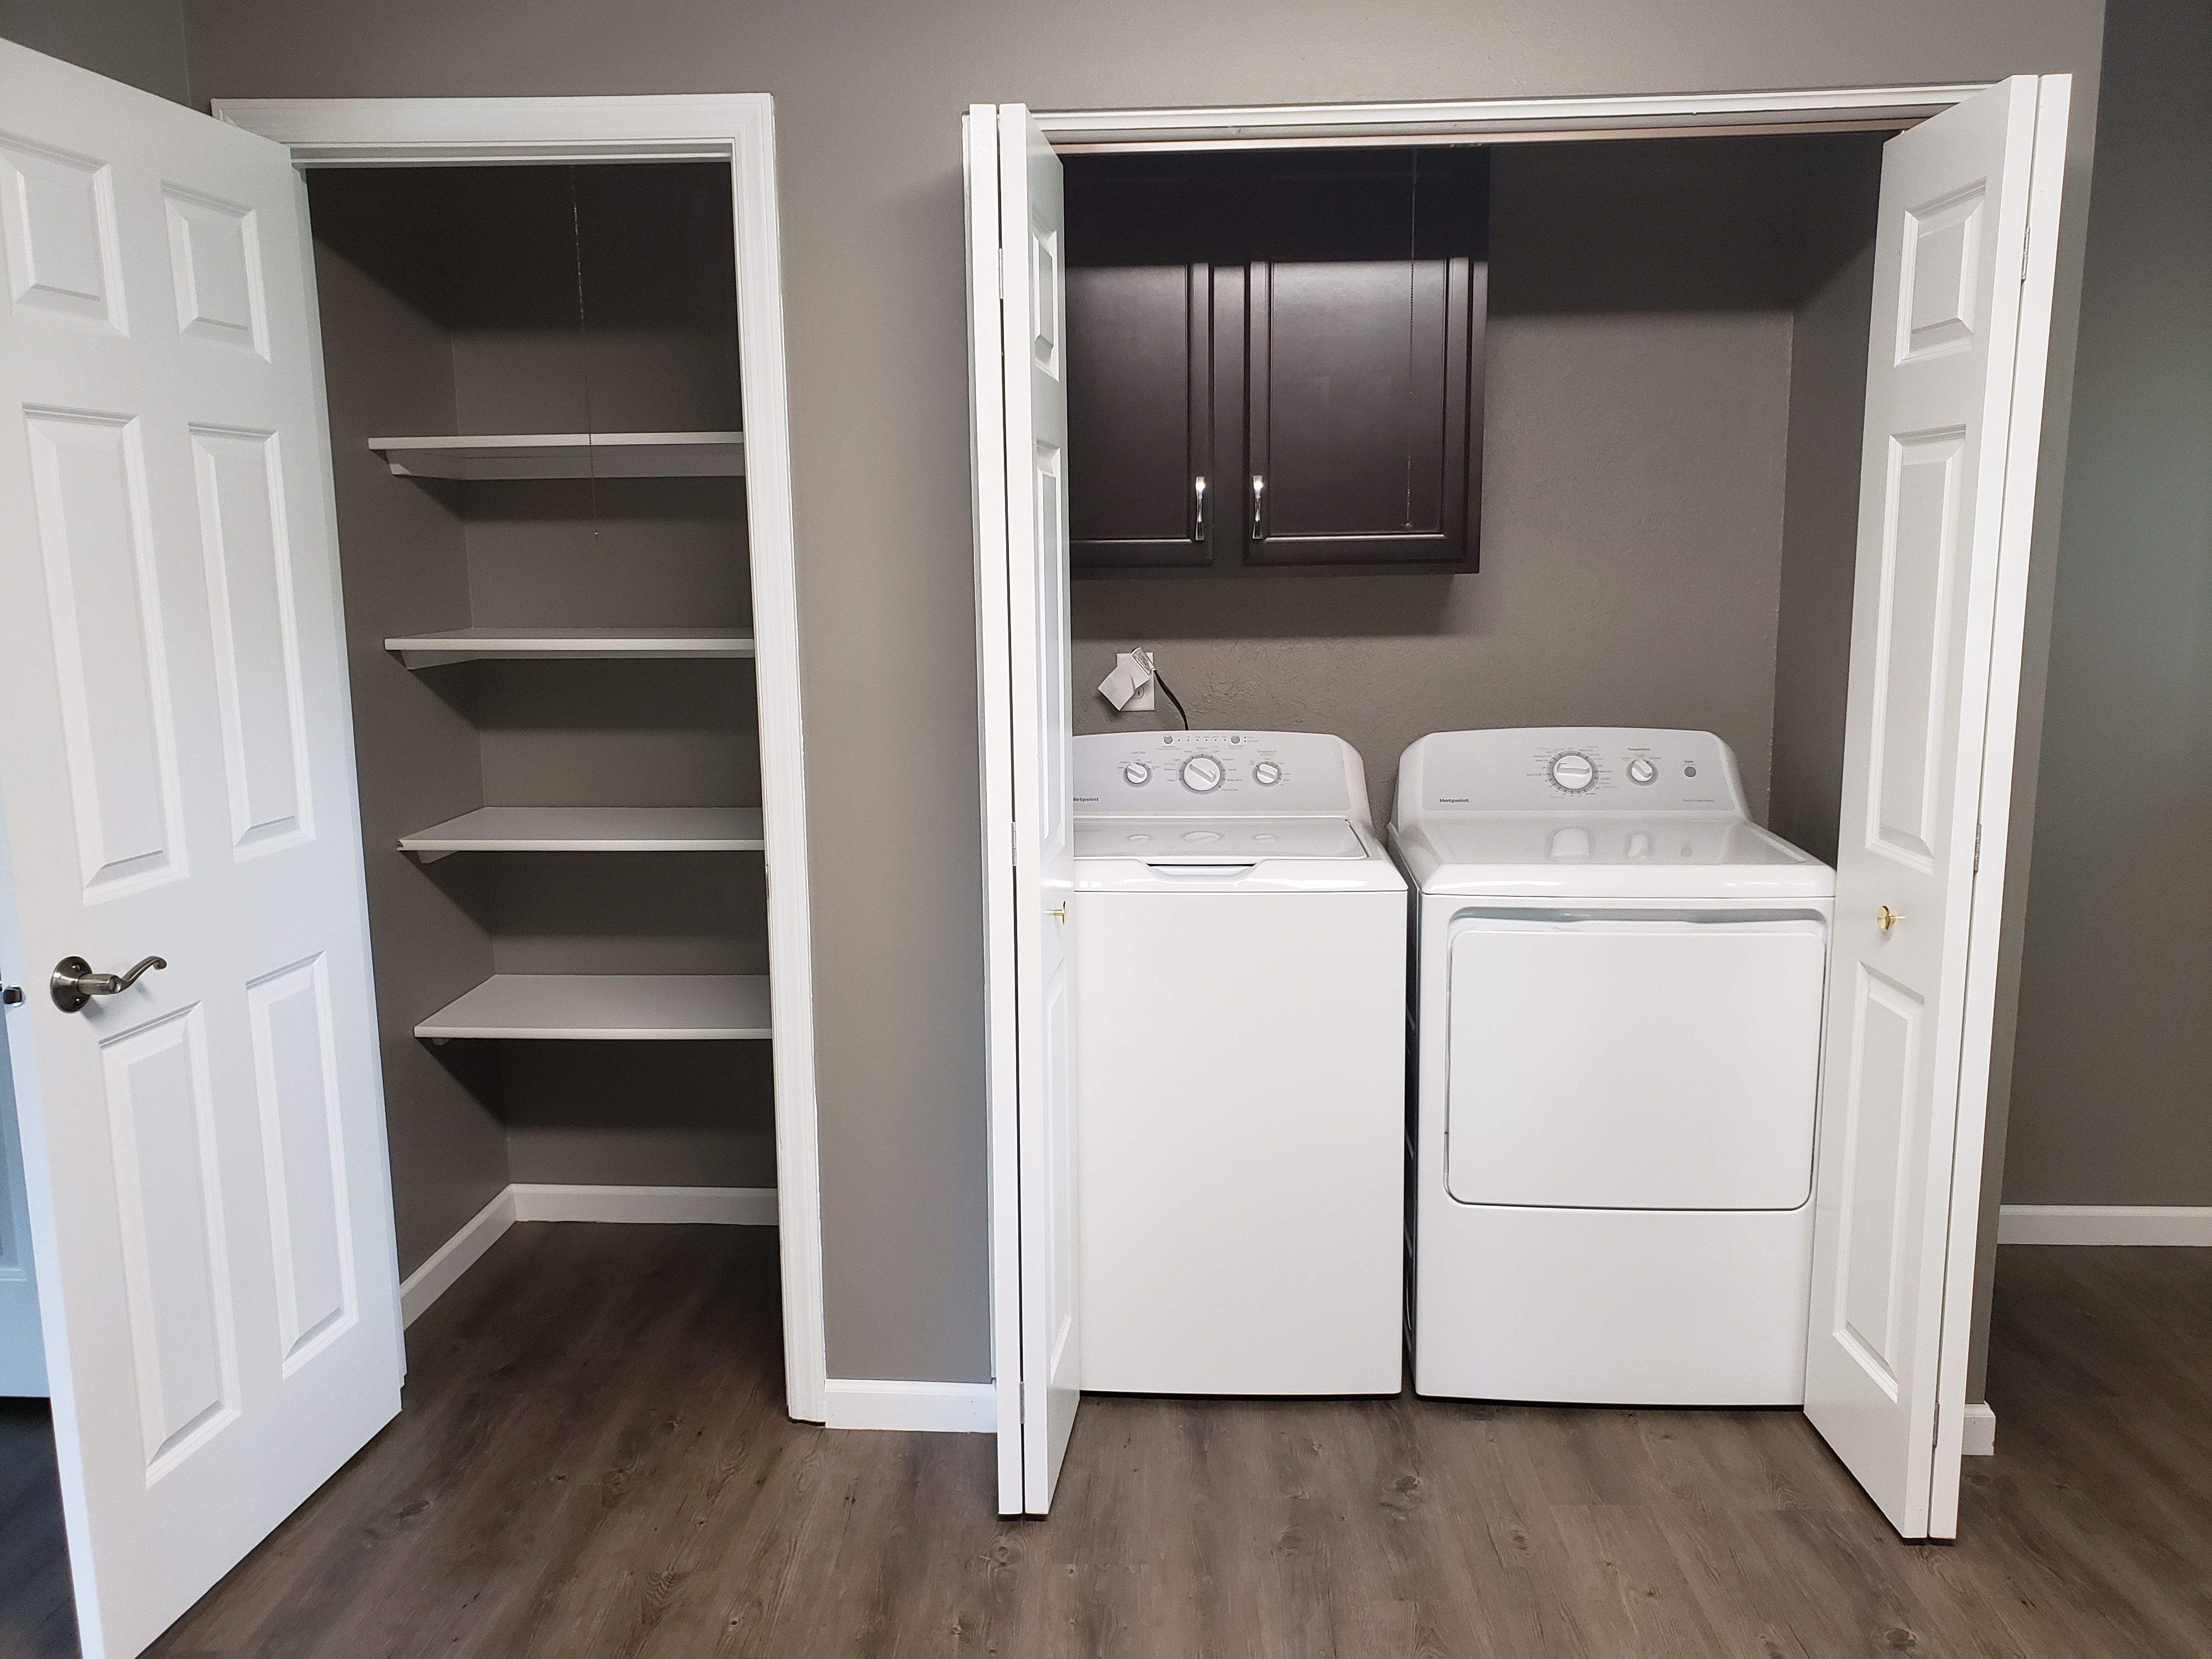 Pantry and Laundry Area